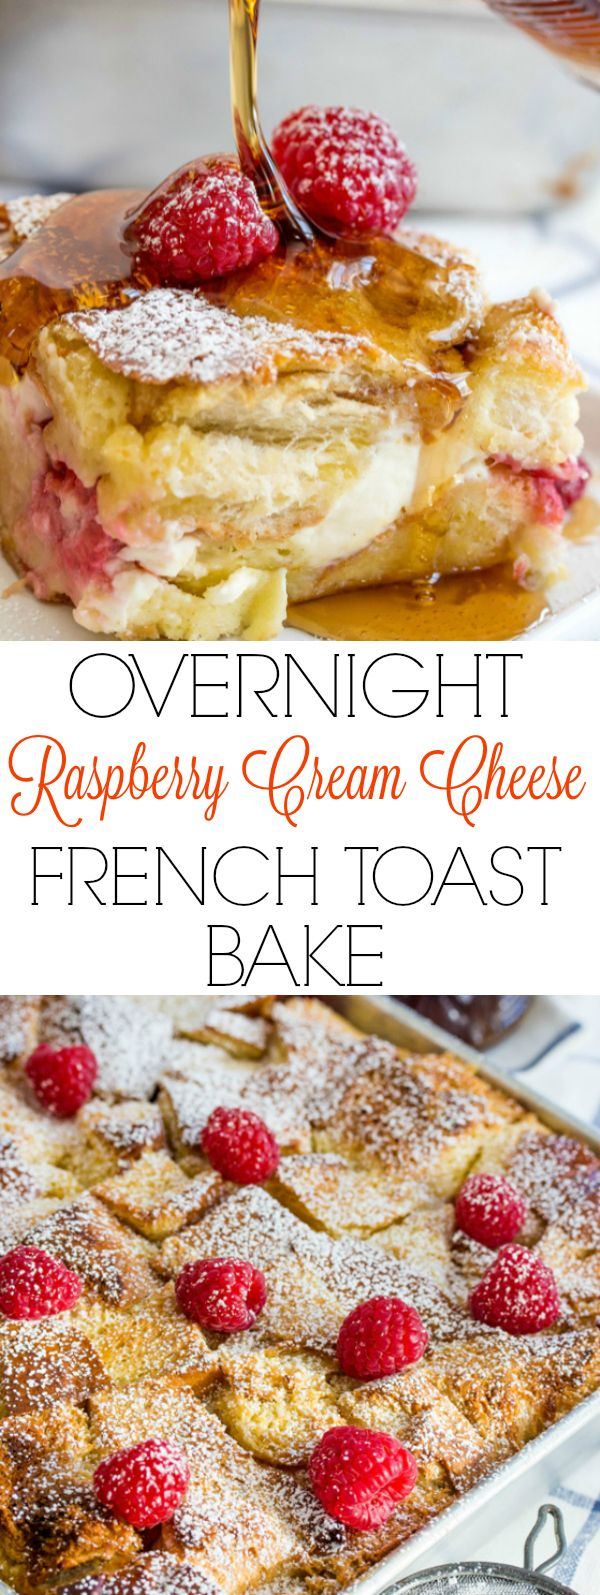 Perk up your morning with this utterly delicious and super easy Raspberry Cream Cheese French Toast Bake! Creamy, crisp and tasty! Wow, can you believe that this is the second breakfast recipe I am sharing this week?!?! OMG right? I think I'm finally converted and am really digging these delicious[Read more]